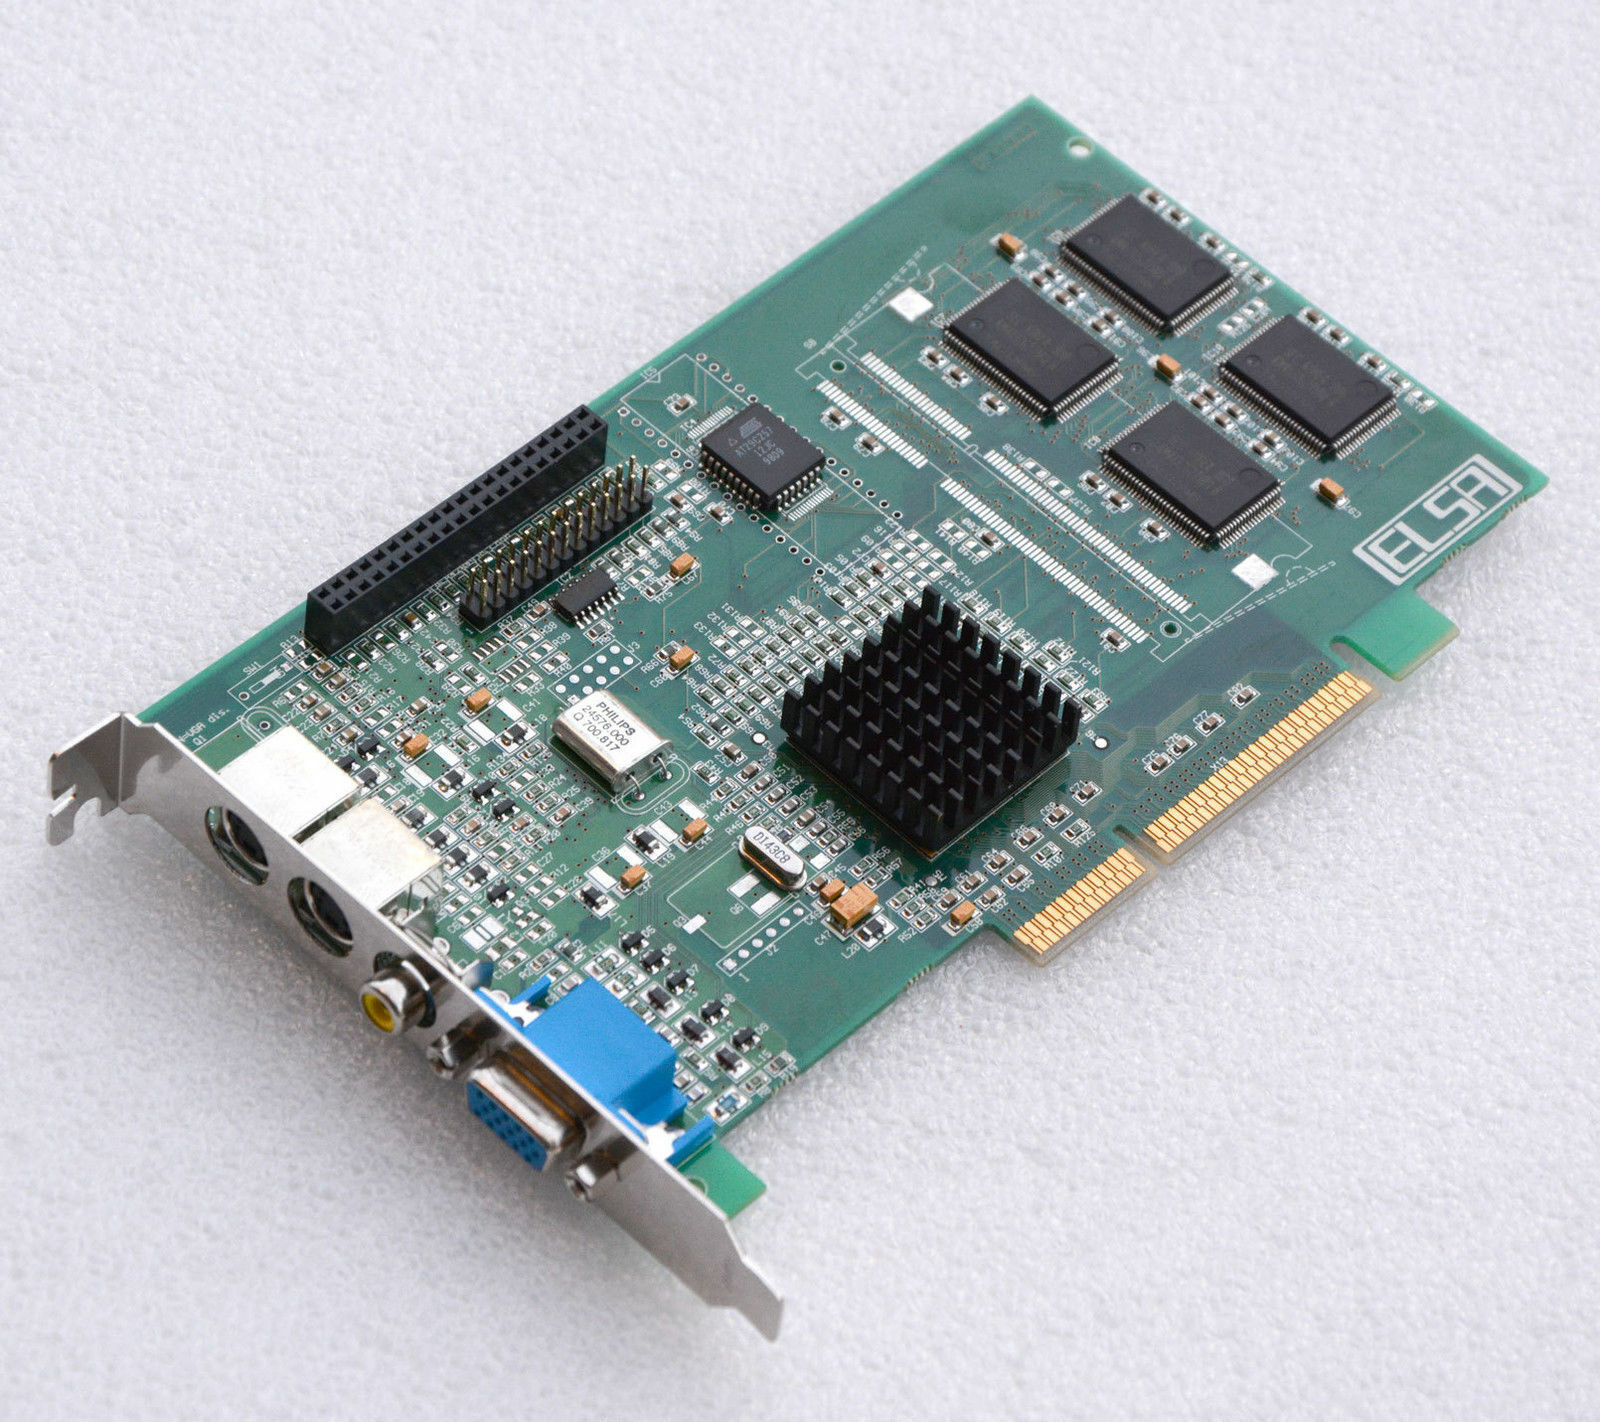 Graphic Card ELSA Winner 2000 Office A8 Vivo 3DLabs AGP VGA S-video IN/Out G26